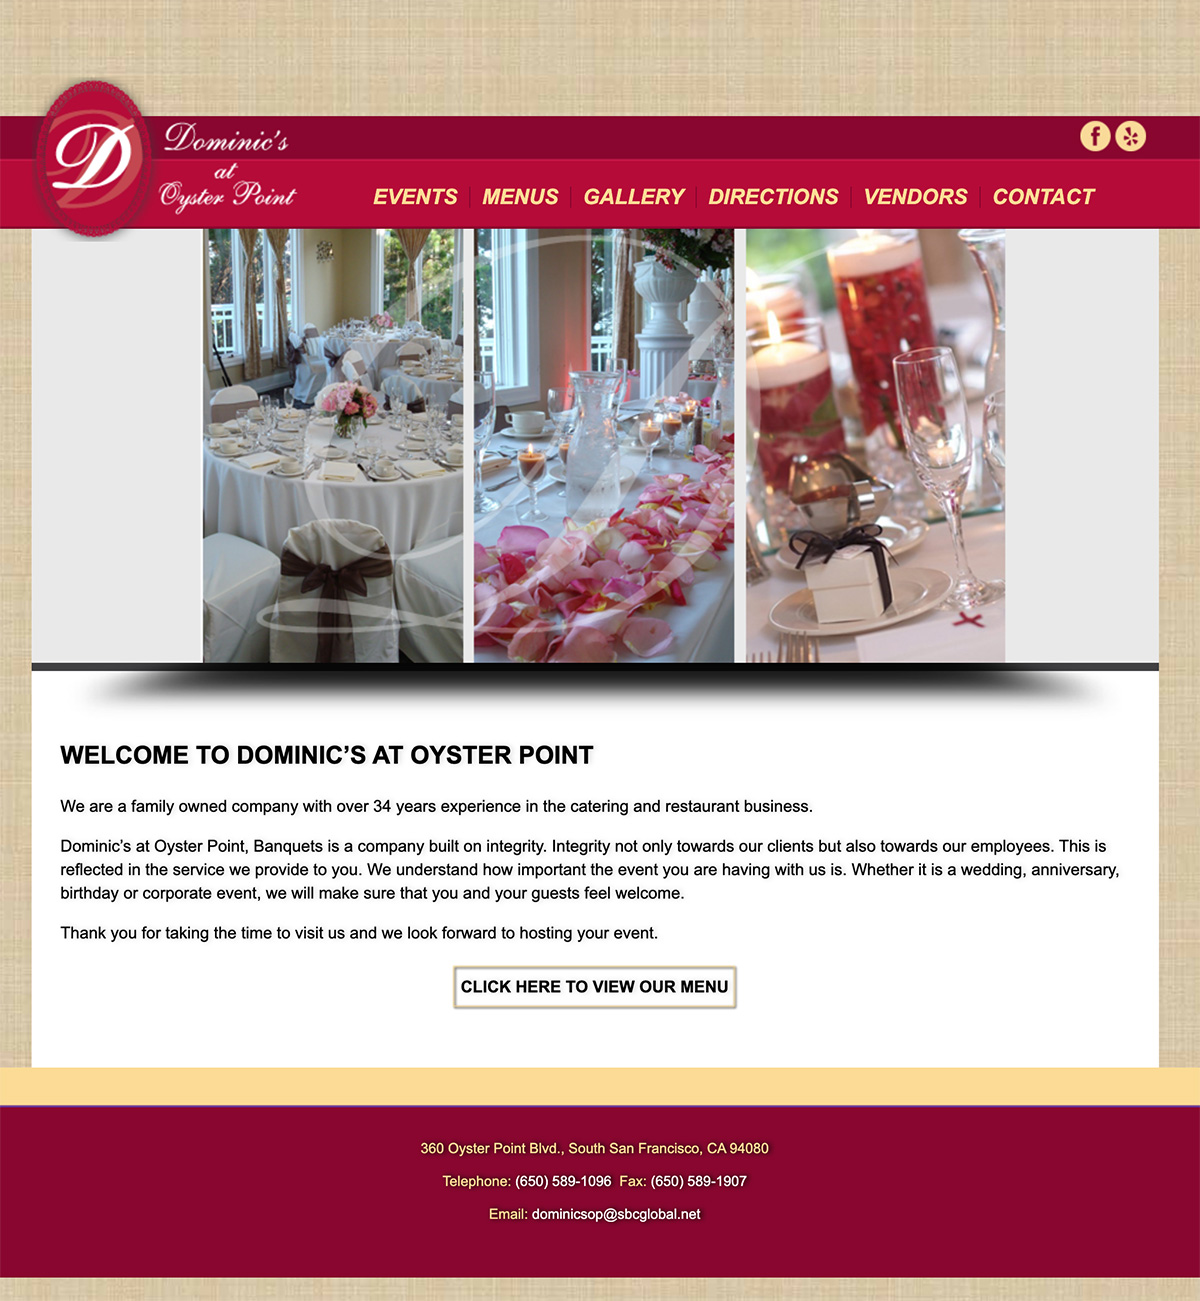 Before Dominics at Oyster Point South San Francisco website redesign